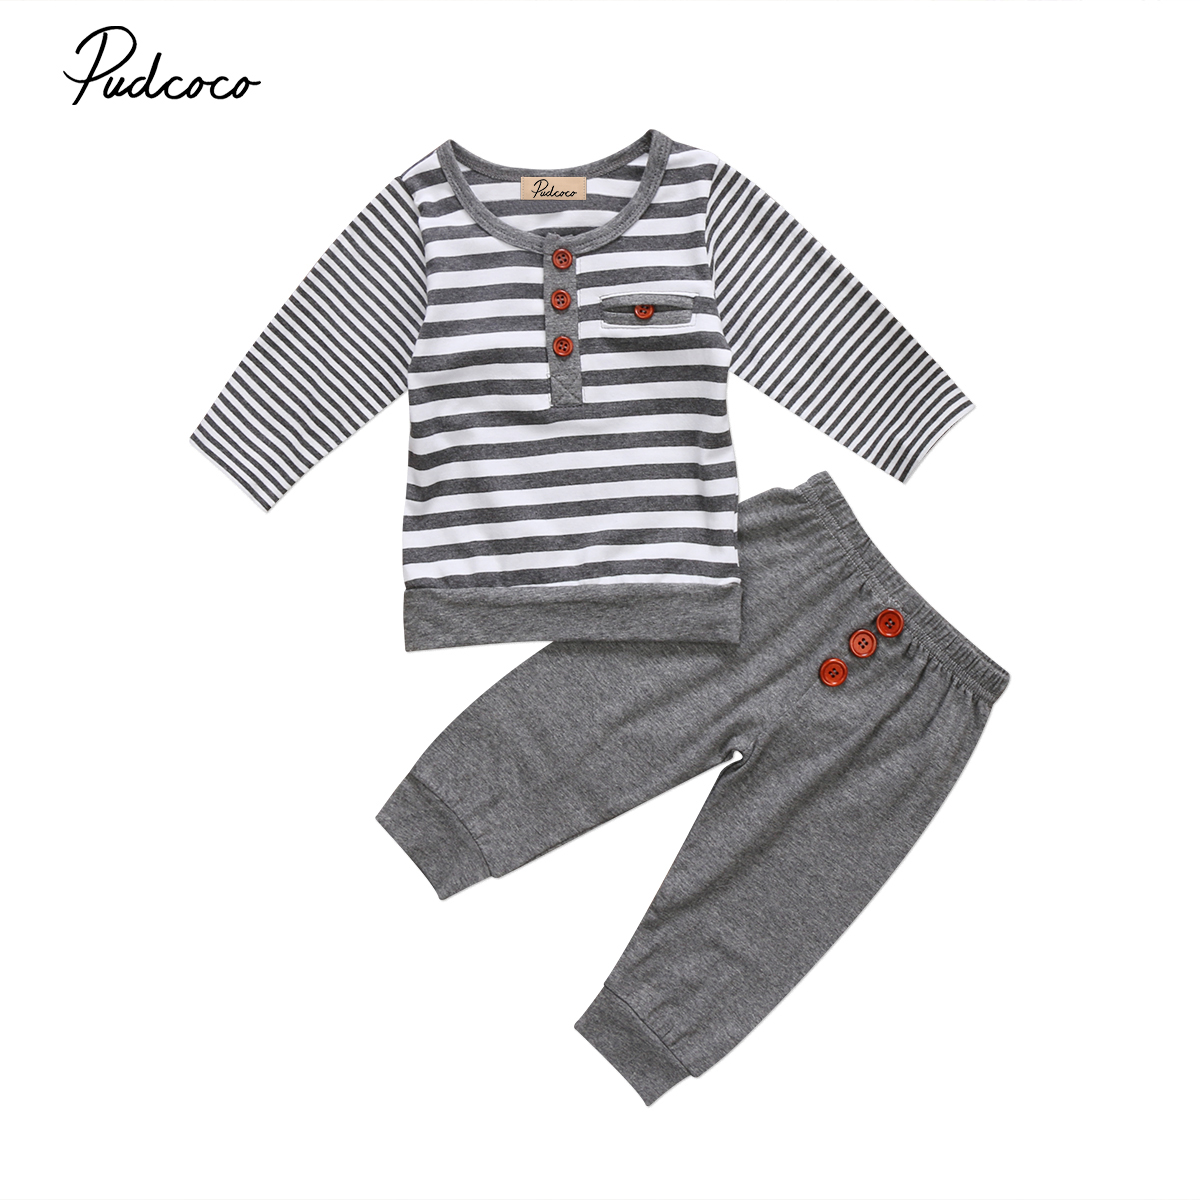 2017 Brand New Newborn Toddler Kids Baby Boy Girl Infant Cotton Clothes Long Sleeve Top T Shirt Pants Striped Outfit 2Pcs Sets toddler infant baby kids boy girl clothes sets t shirt pants spring summer outfit long sleeve cute minions cartoon sweat